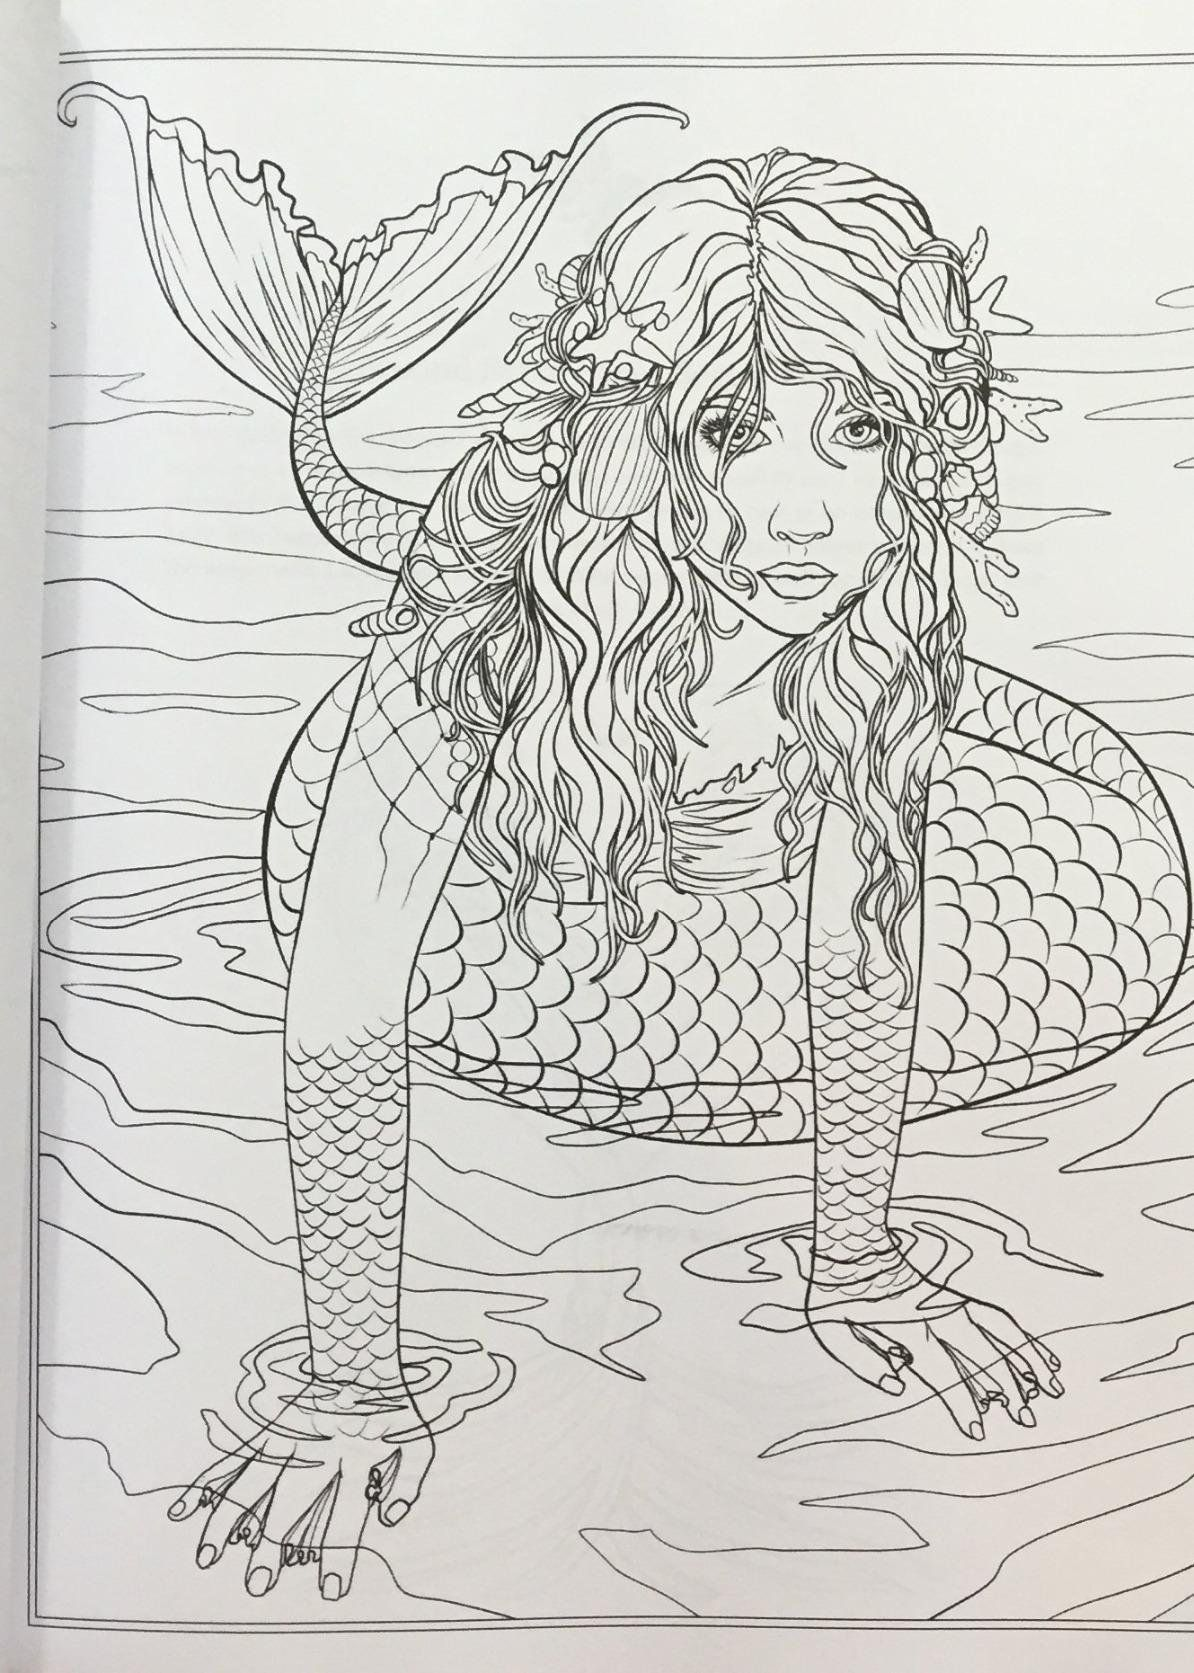 Fairy art coloring book by selina fenech - Mythical Mermaids Fantasy Adult Coloring Book Fantasy Coloring By Selina Volume 8